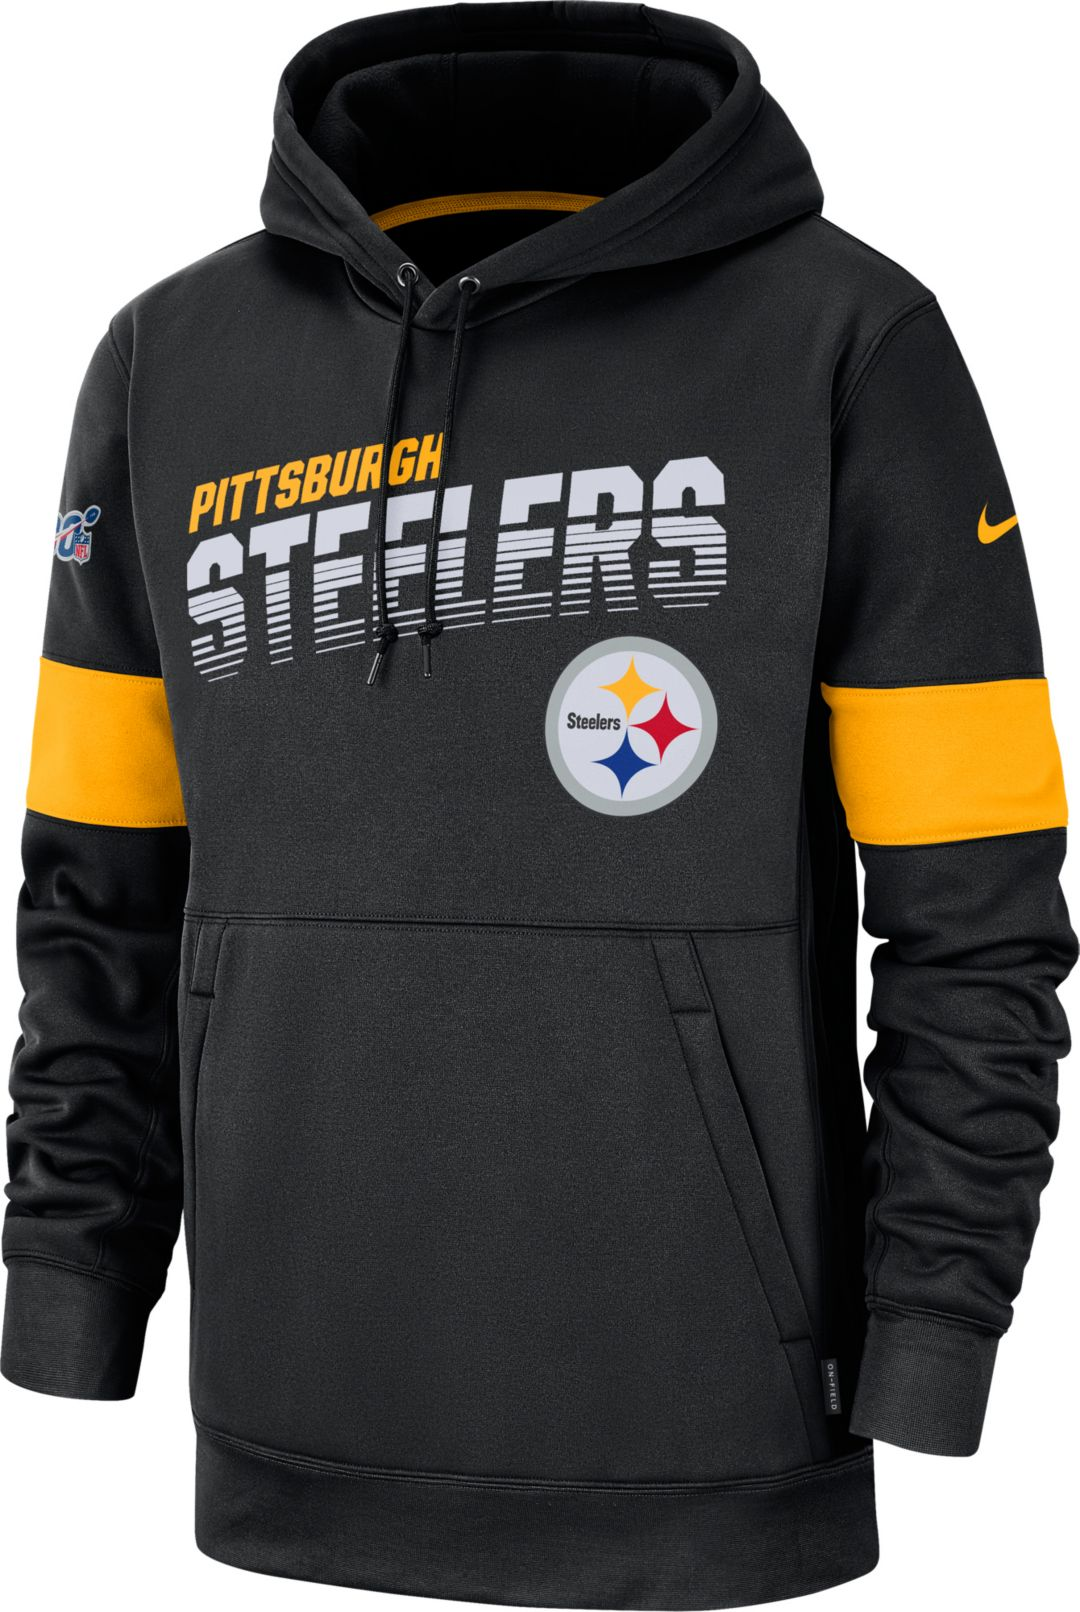 huge selection of c822f 0591f Nike Men's Pittsburgh Steelers 100th Sideline Therma-FIT Black Pullover  Hoodie